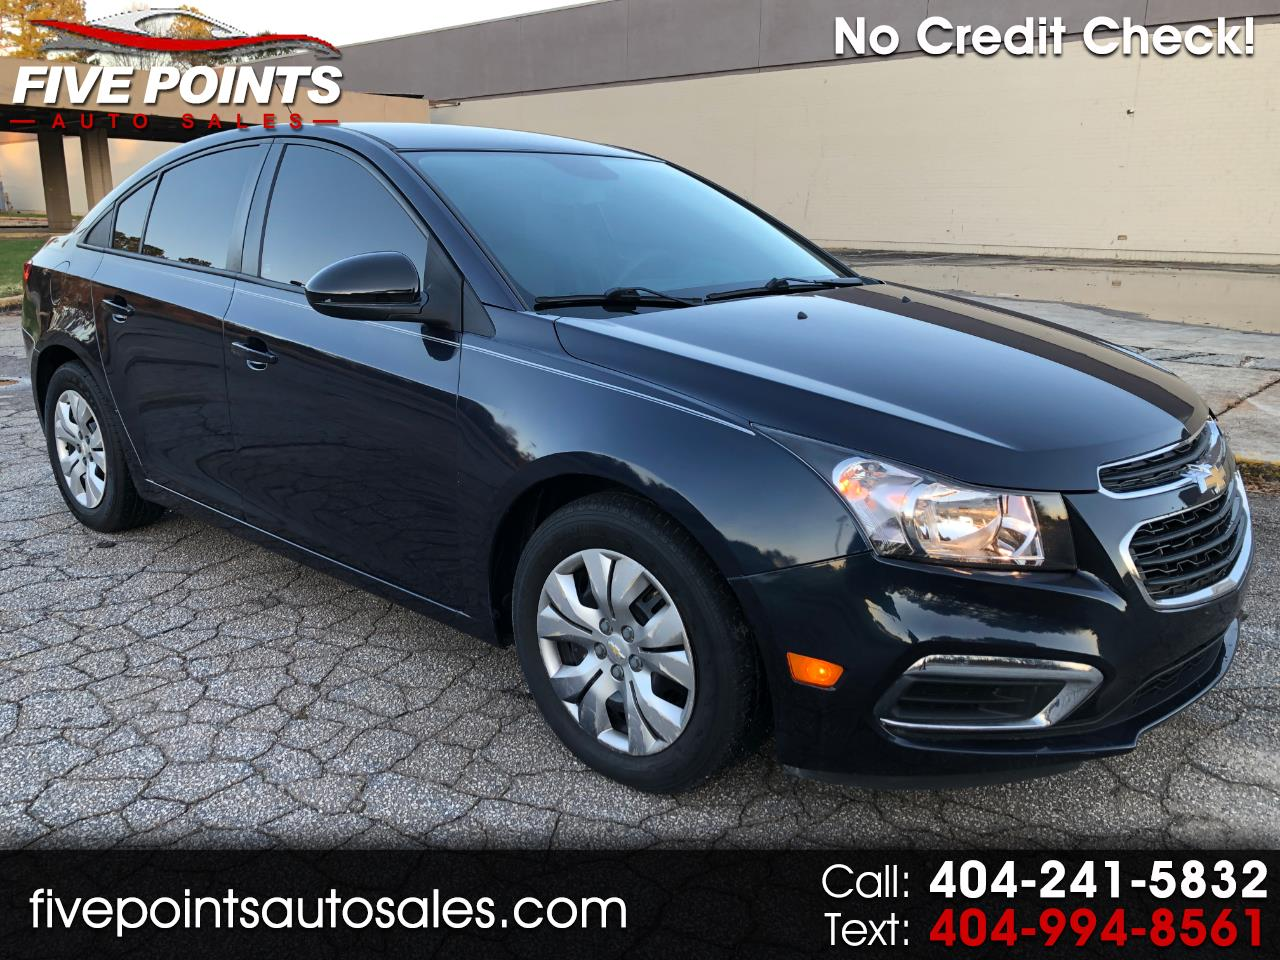 2015 Chevrolet Cruze LS Manual